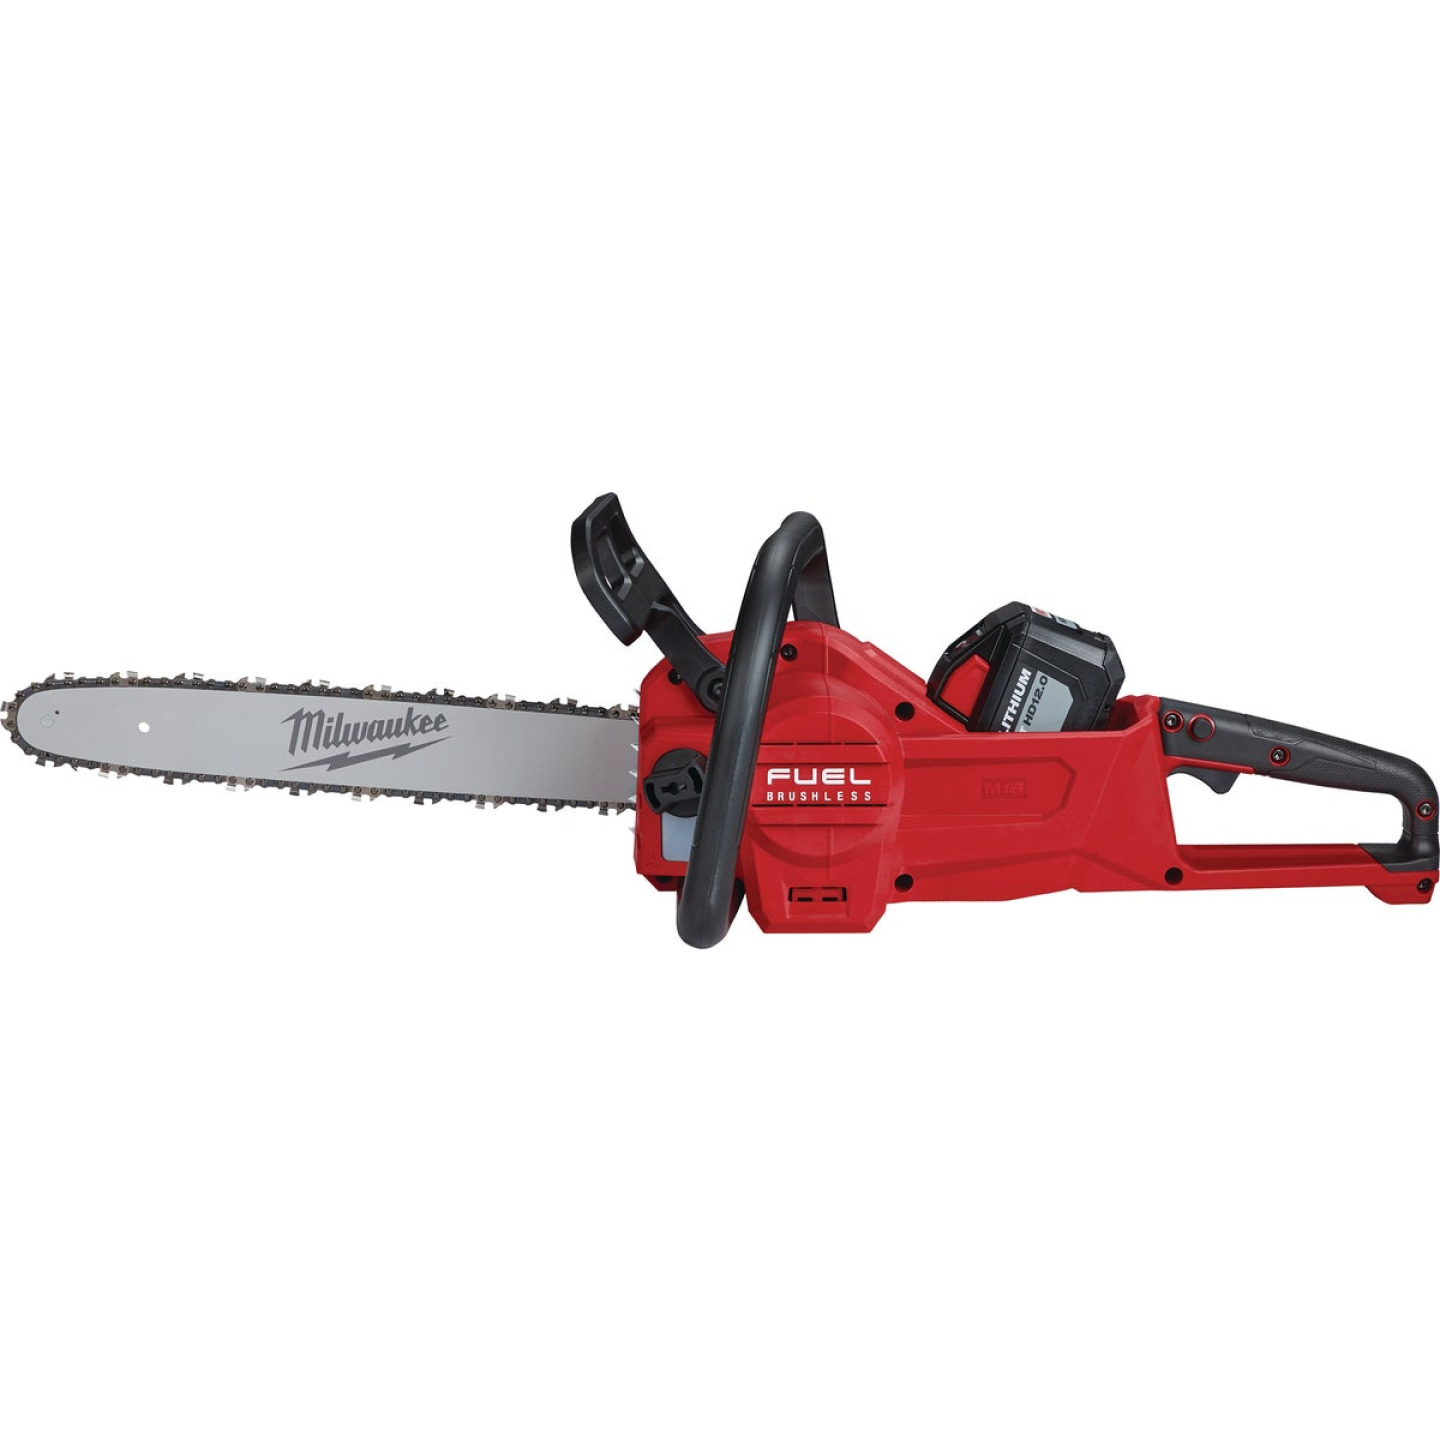 Milwaukee M18 FUEL 16 In. 18V Lithium Ion Cordless Chainsaw Kit Image 5